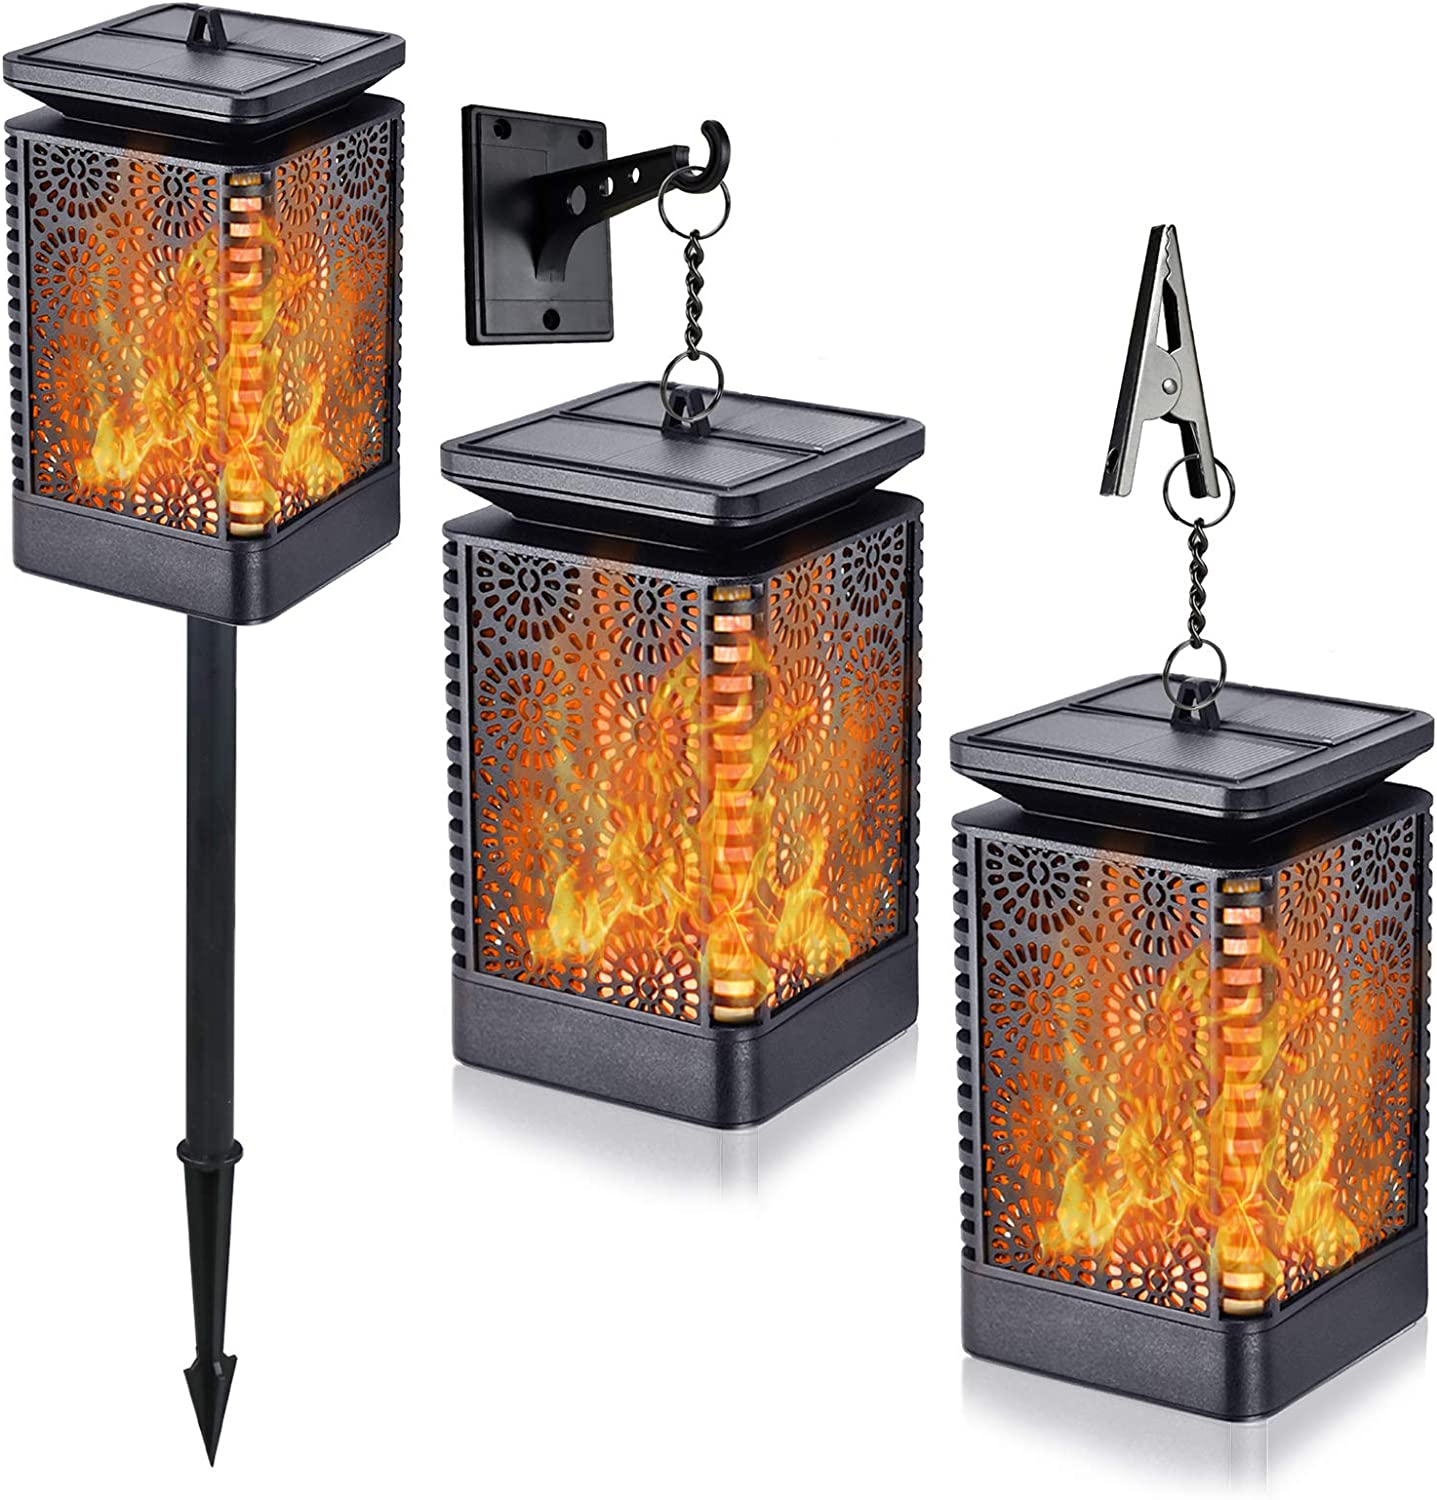 Upgraded Solar Lights Outdoor Decorative with Ground Stakes, 2 Pack Waterproof Solar Powered Lanterns Decor with Realistic Beating Flame Flickering Effect for Patio Garden Camping Porch Backyard